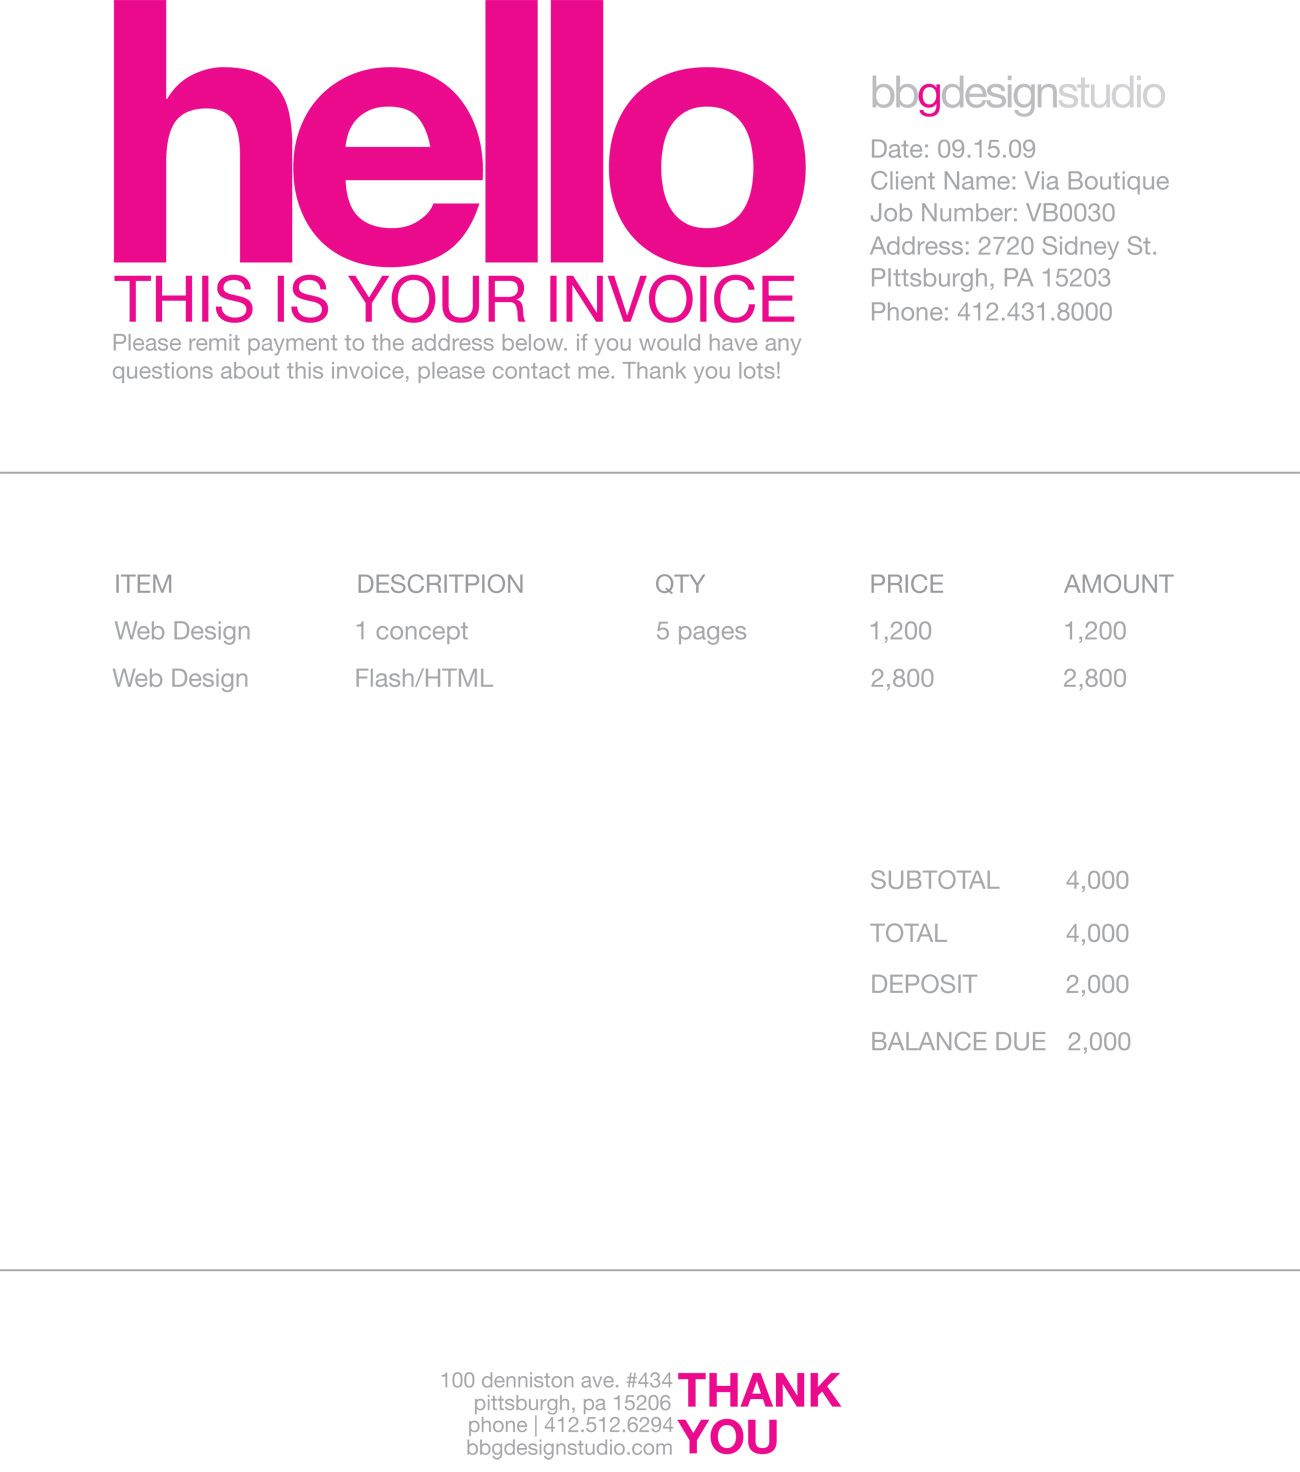 Aaaaeroincus  Marvellous  Images About Invoice Design On Pinterest With Remarkable Gst Invoices Besides Quotation Invoice Template Furthermore Business Invoice Template Excel With Divine How To Make Tax Invoice Also Invoice Saas In Addition Mobile Invoicing Solutions And Free Plumbing Invoice Template As Well As Example Of Invoice For Services Rendered Additionally Sage Invoice Templates From Pinterestcom With Aaaaeroincus  Remarkable  Images About Invoice Design On Pinterest With Divine Gst Invoices Besides Quotation Invoice Template Furthermore Business Invoice Template Excel And Marvellous How To Make Tax Invoice Also Invoice Saas In Addition Mobile Invoicing Solutions From Pinterestcom